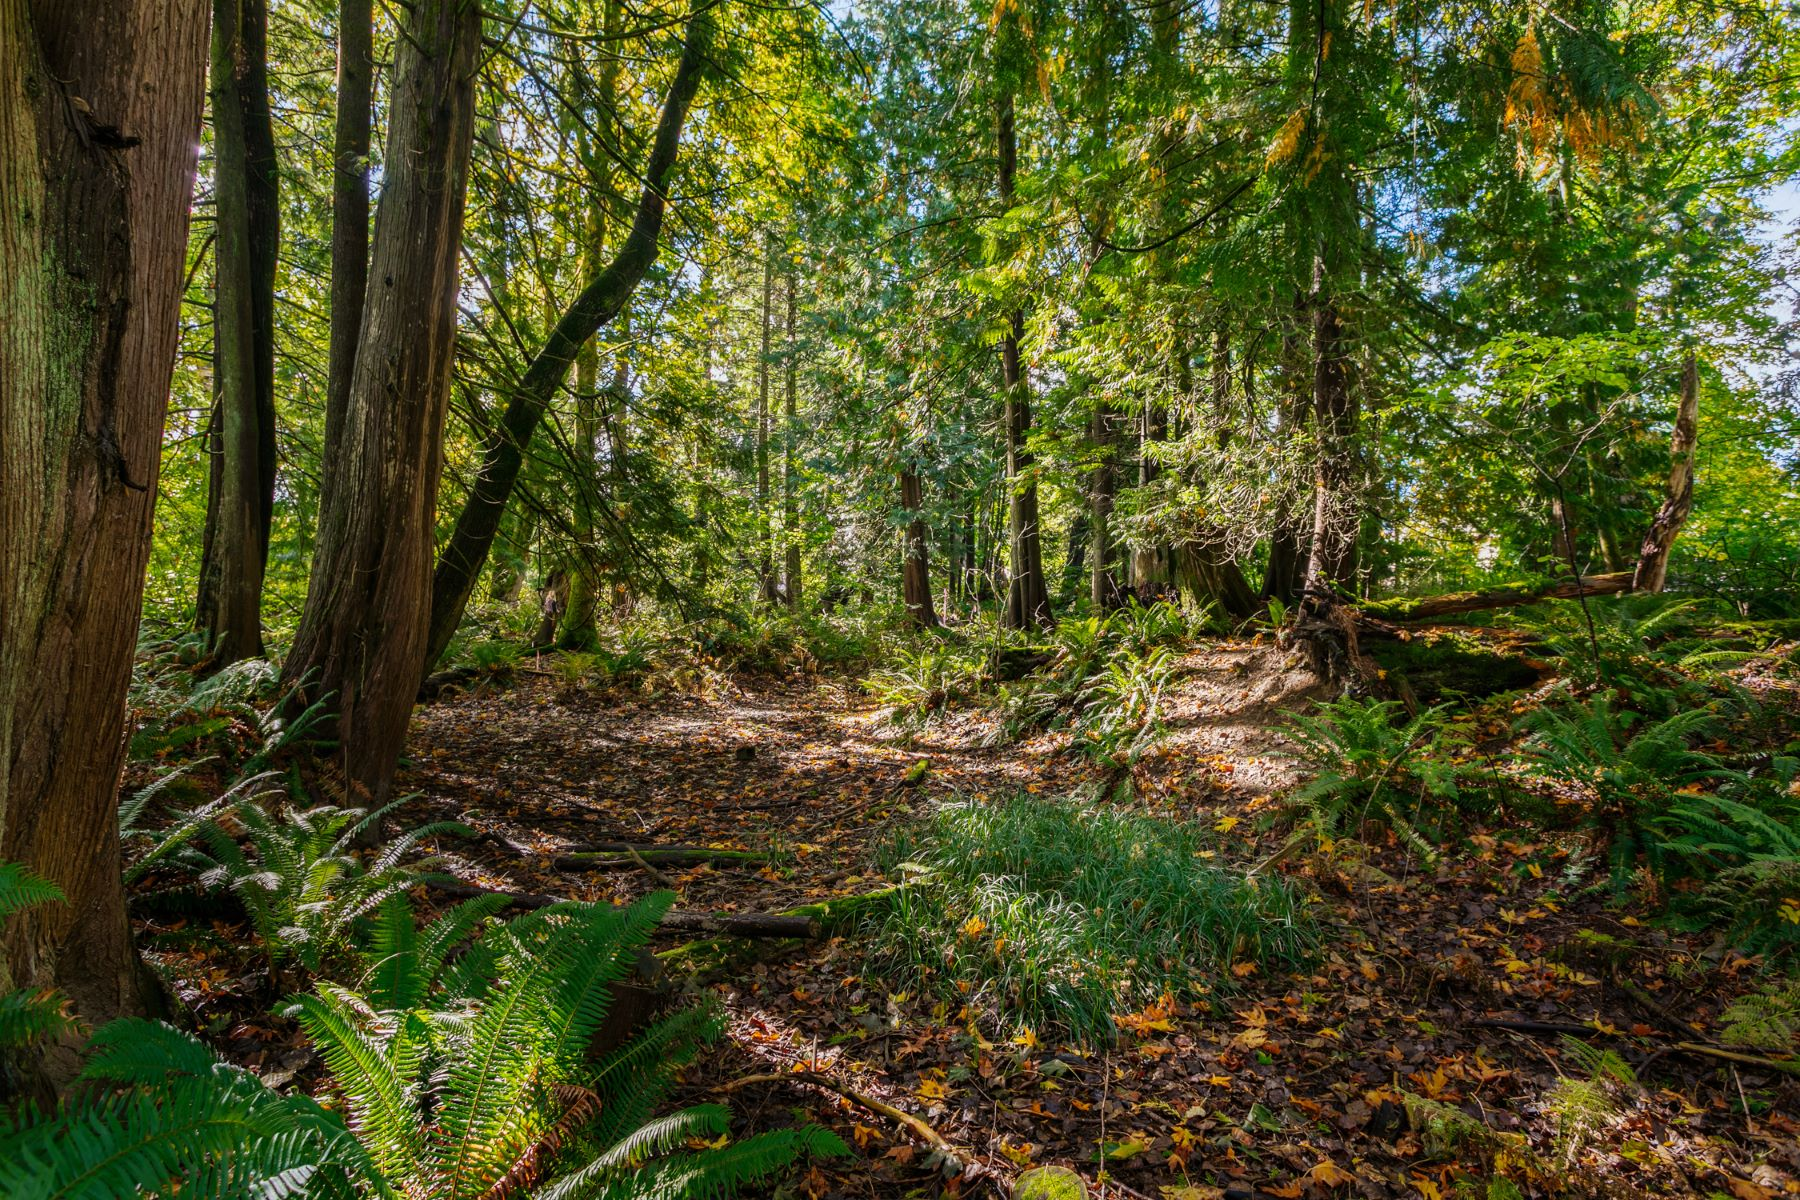 Land for Sale at Peaceful Surroundings 548 NE 8th St North Bend, Washington 98045 United States